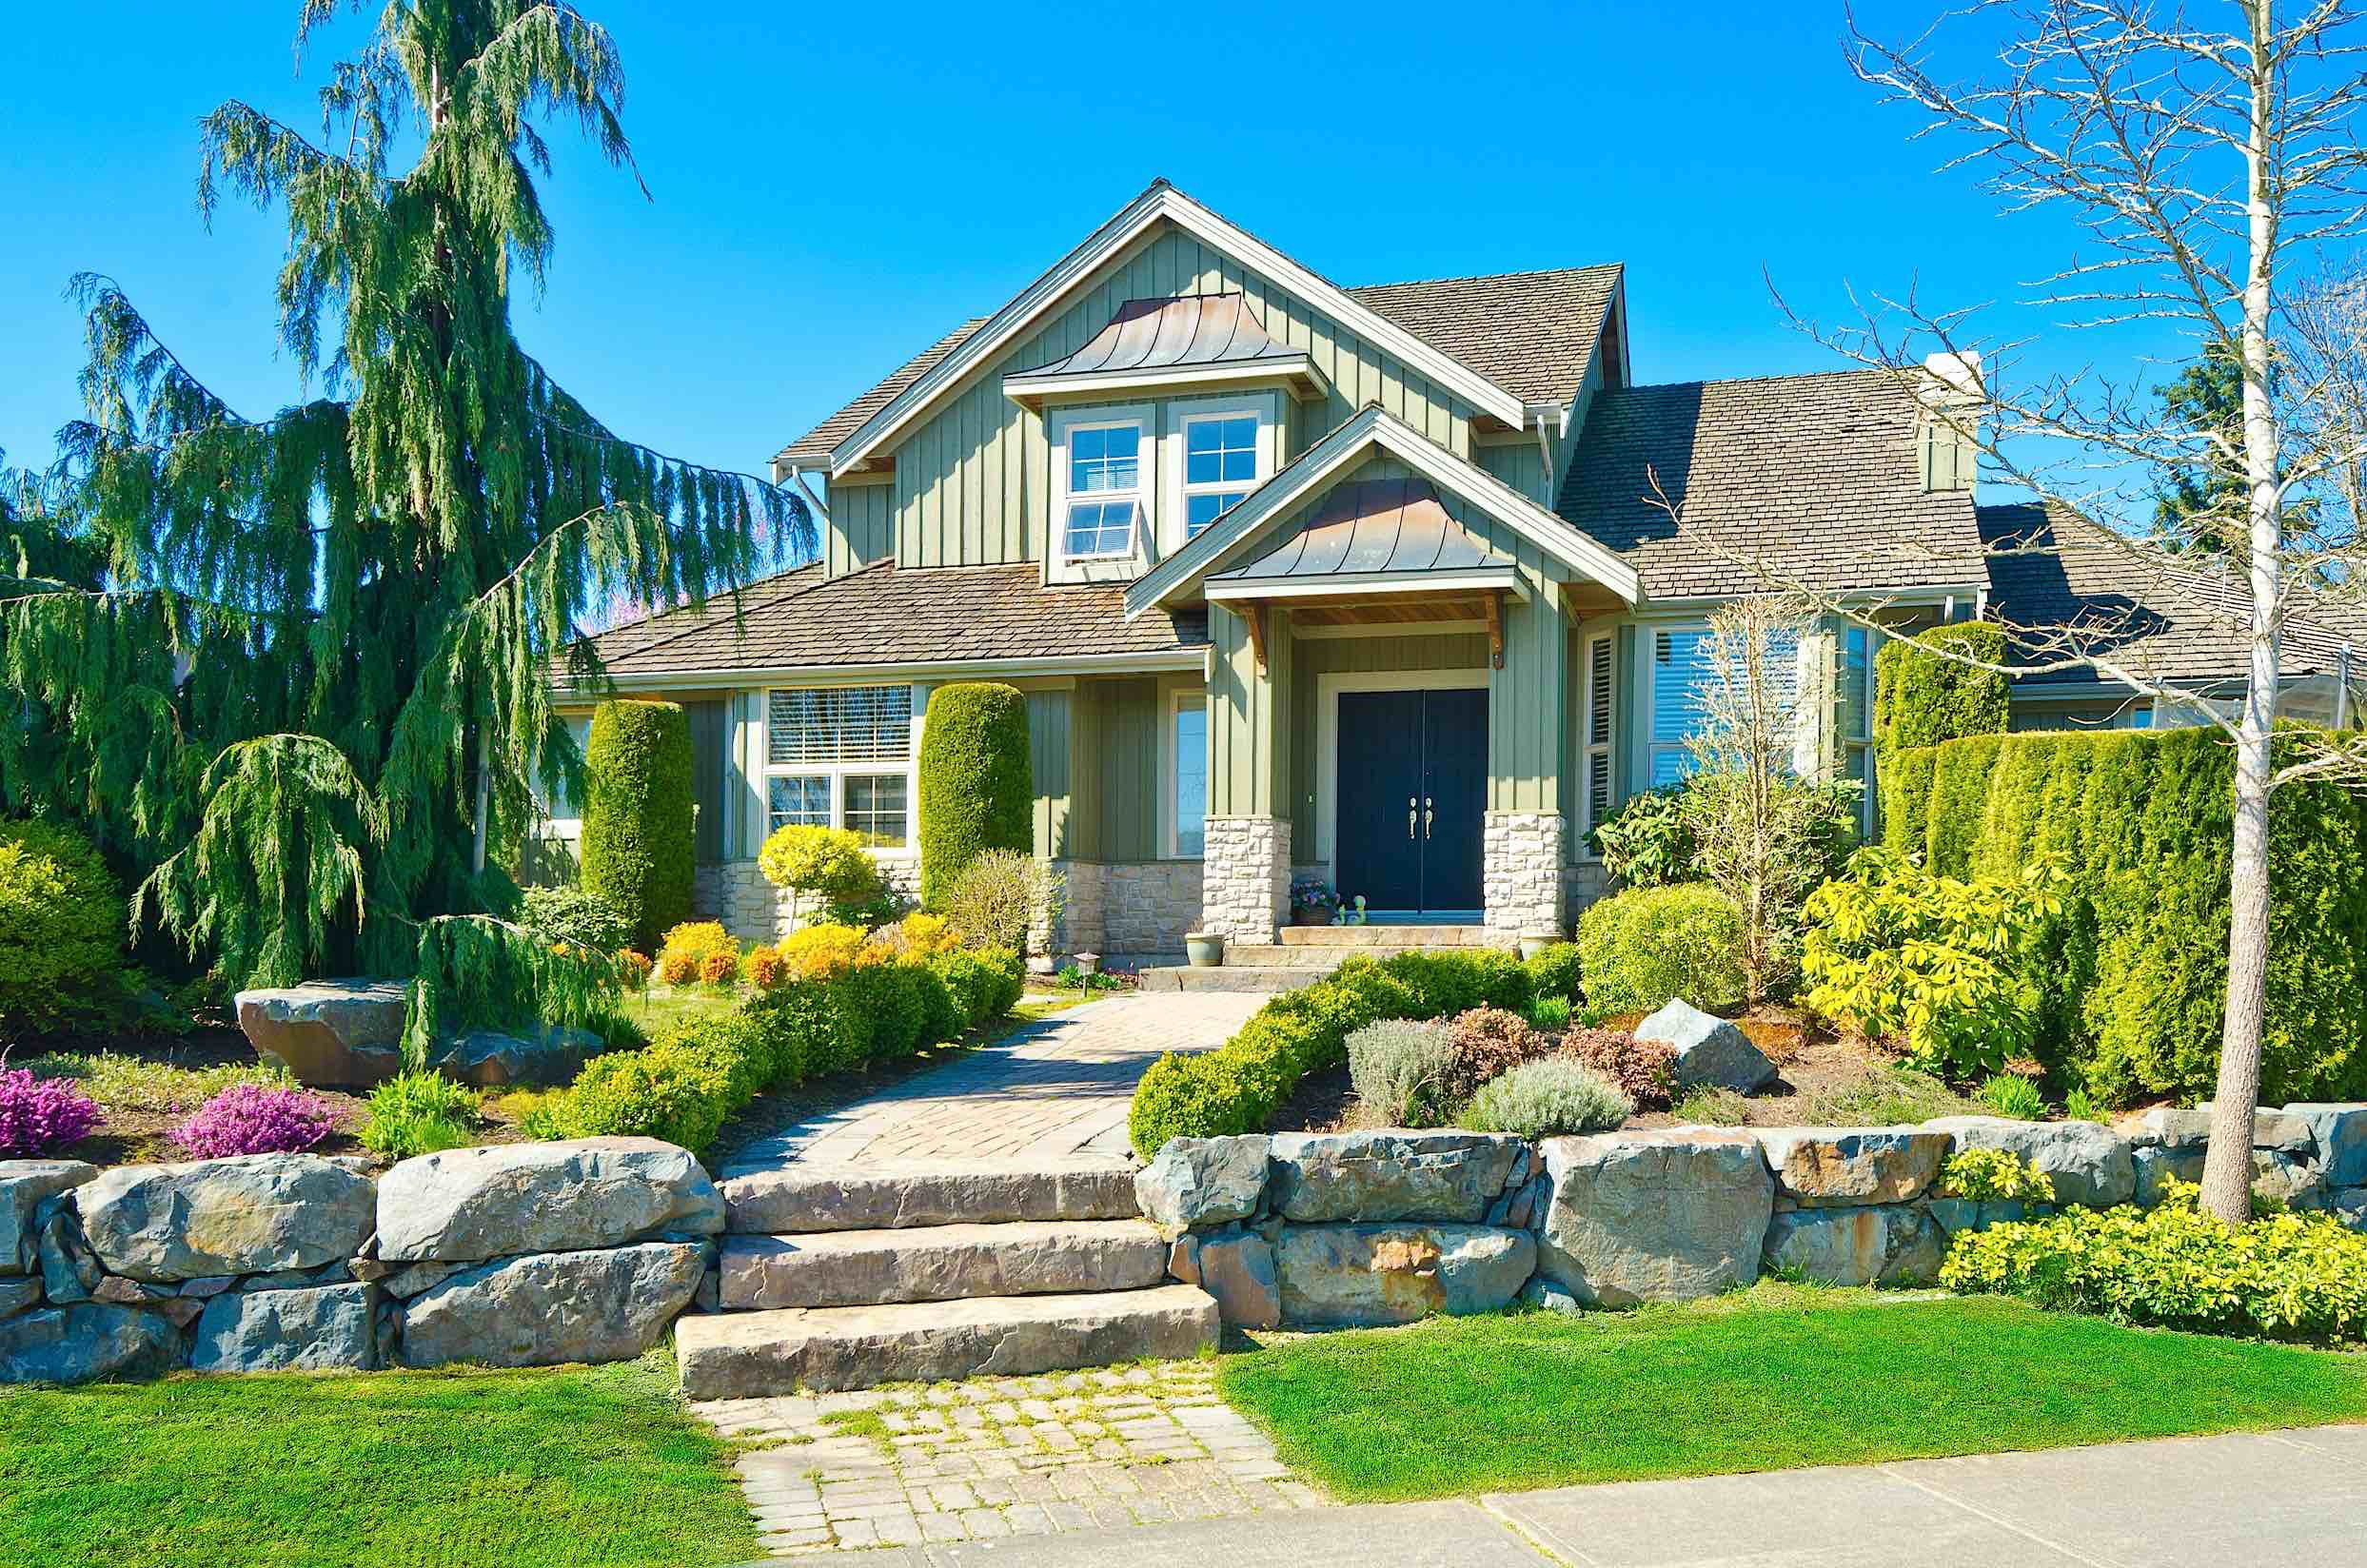 Outdoor Landscape Curb Appeal  Easy Tricks To Improve Your Home s Curb Appeal